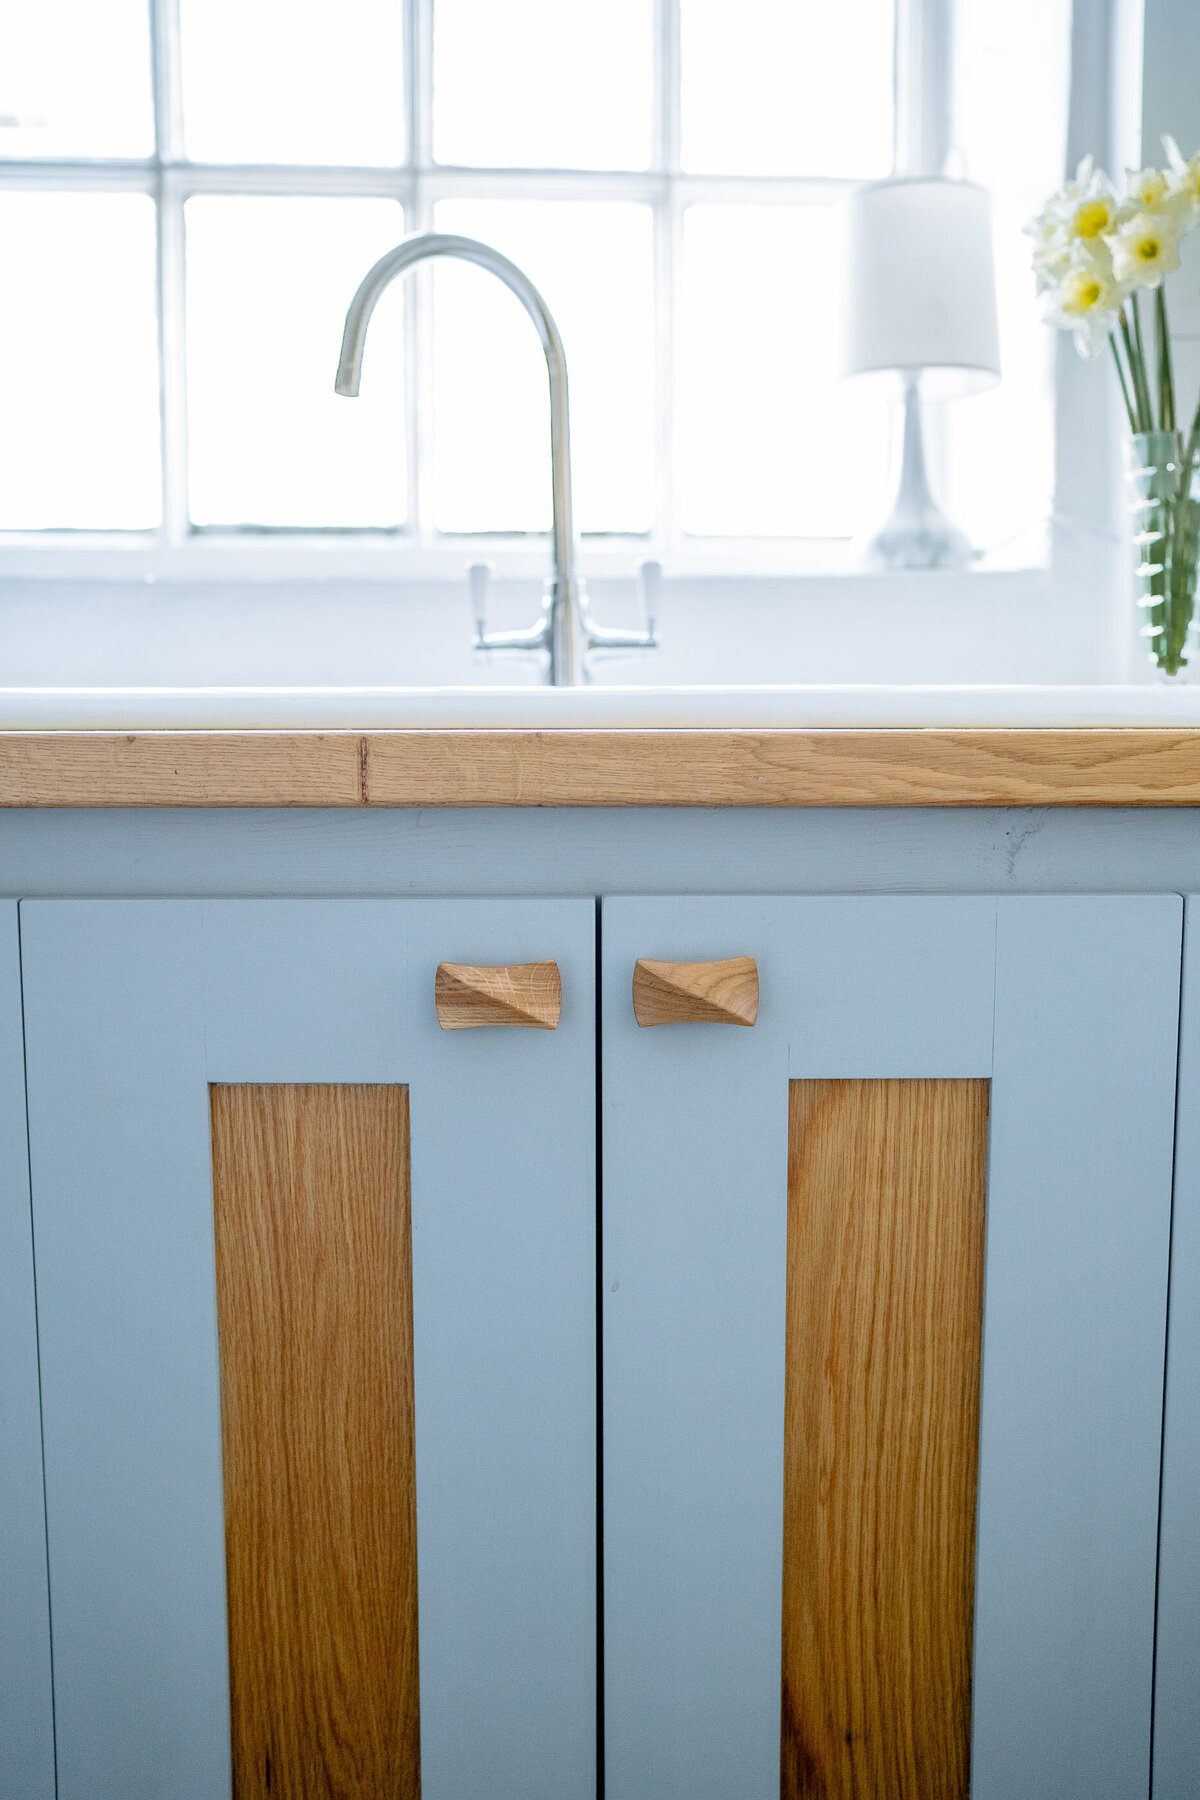 Kitchen Cabinets. Product Photographer Leeds